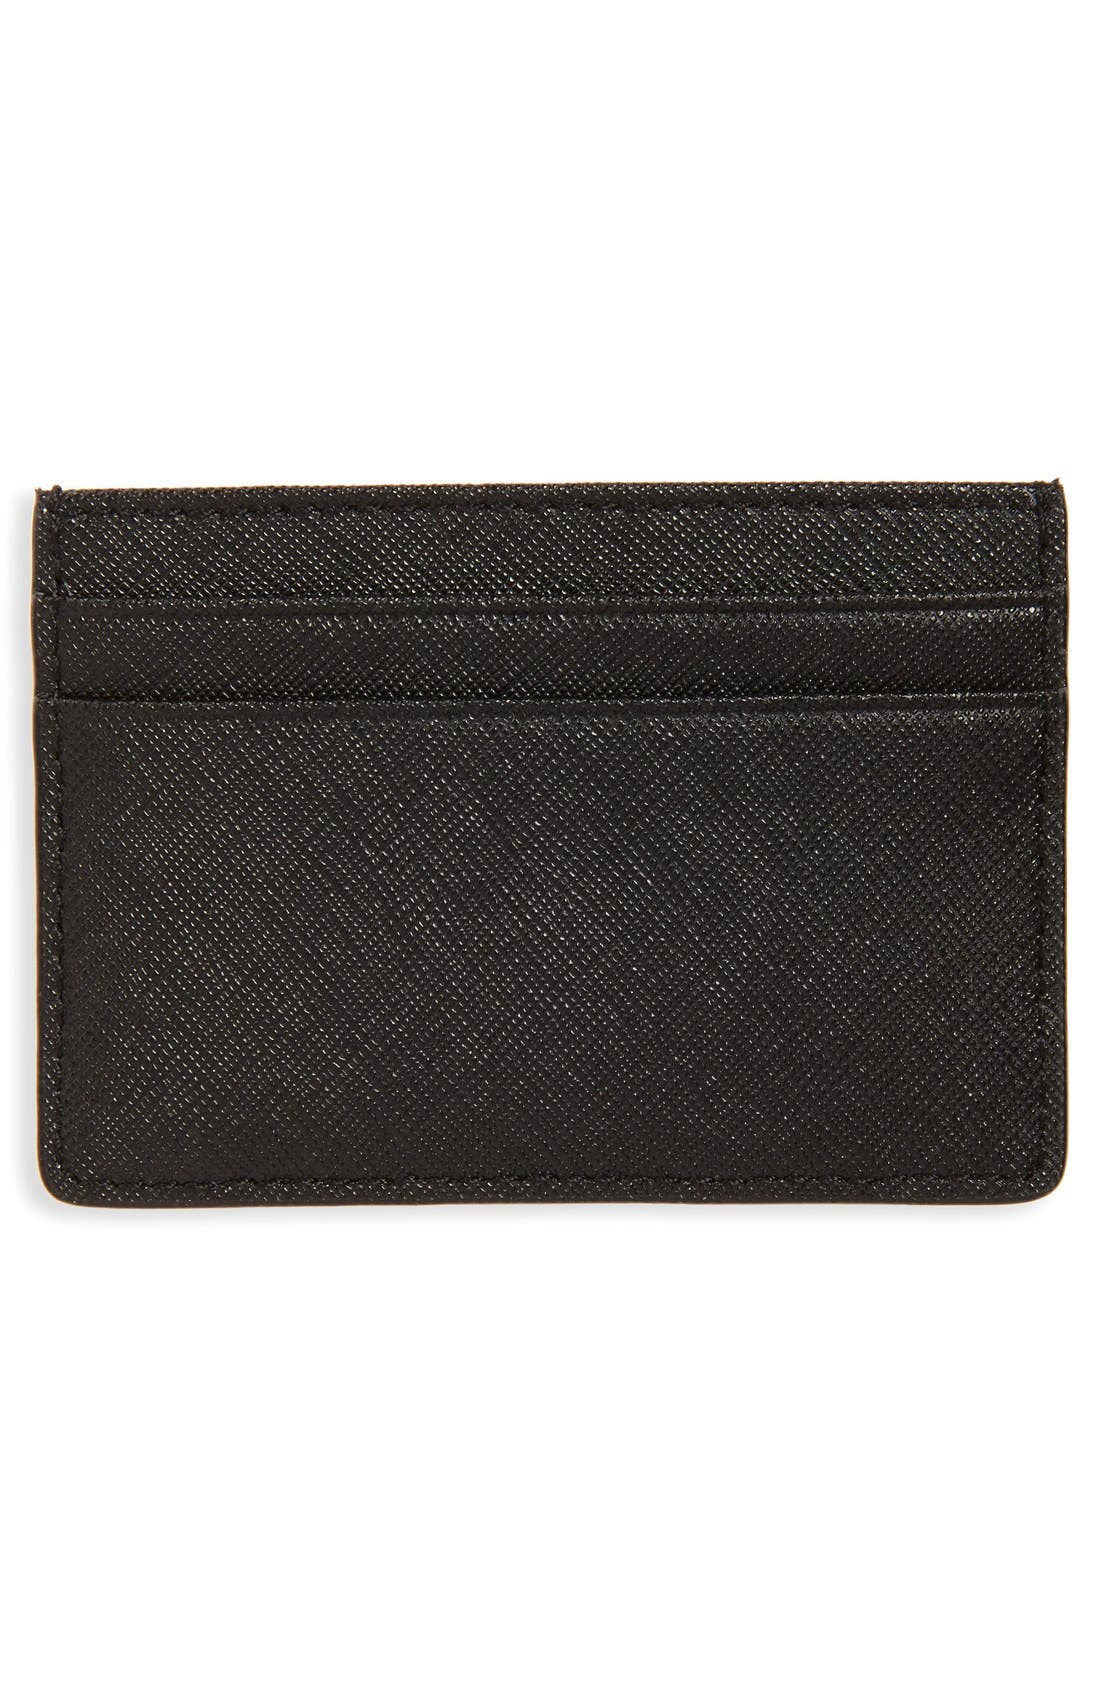 'Robinson' Slim Saffiano Leather Card Case,                             Alternate thumbnail 2, color,                             001